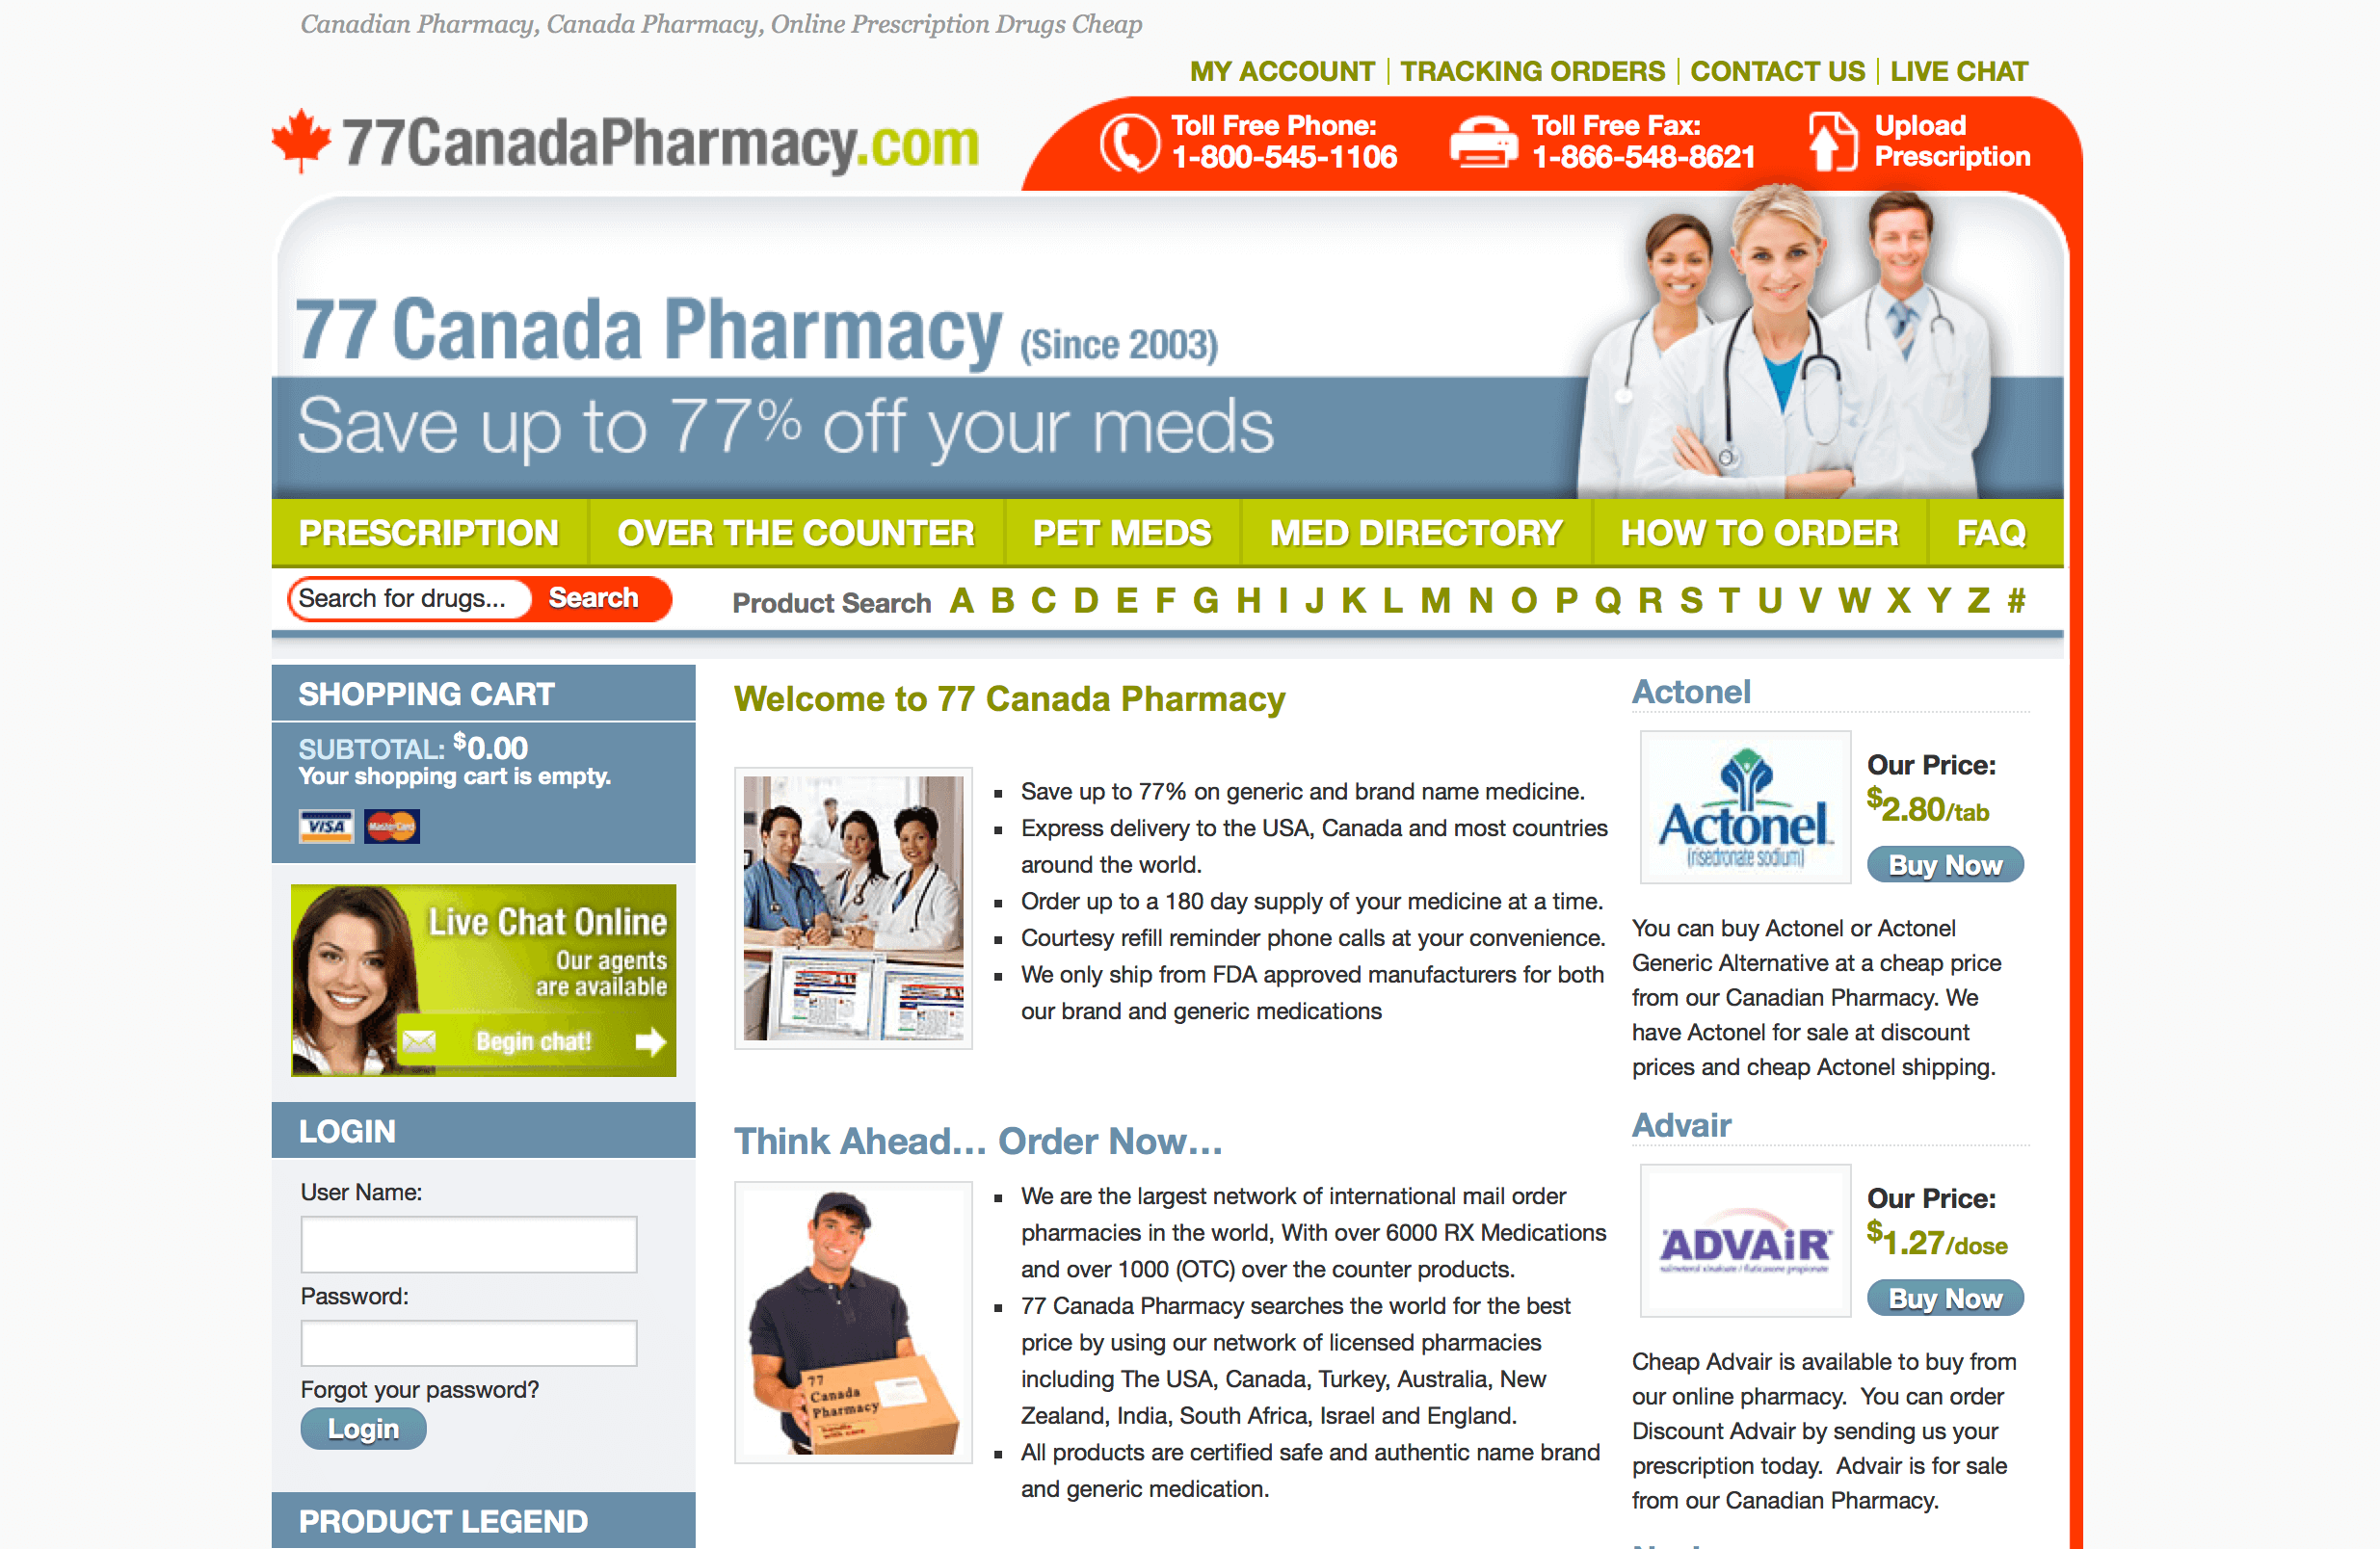 77CanadaPharmacy.com Pharmacy Review